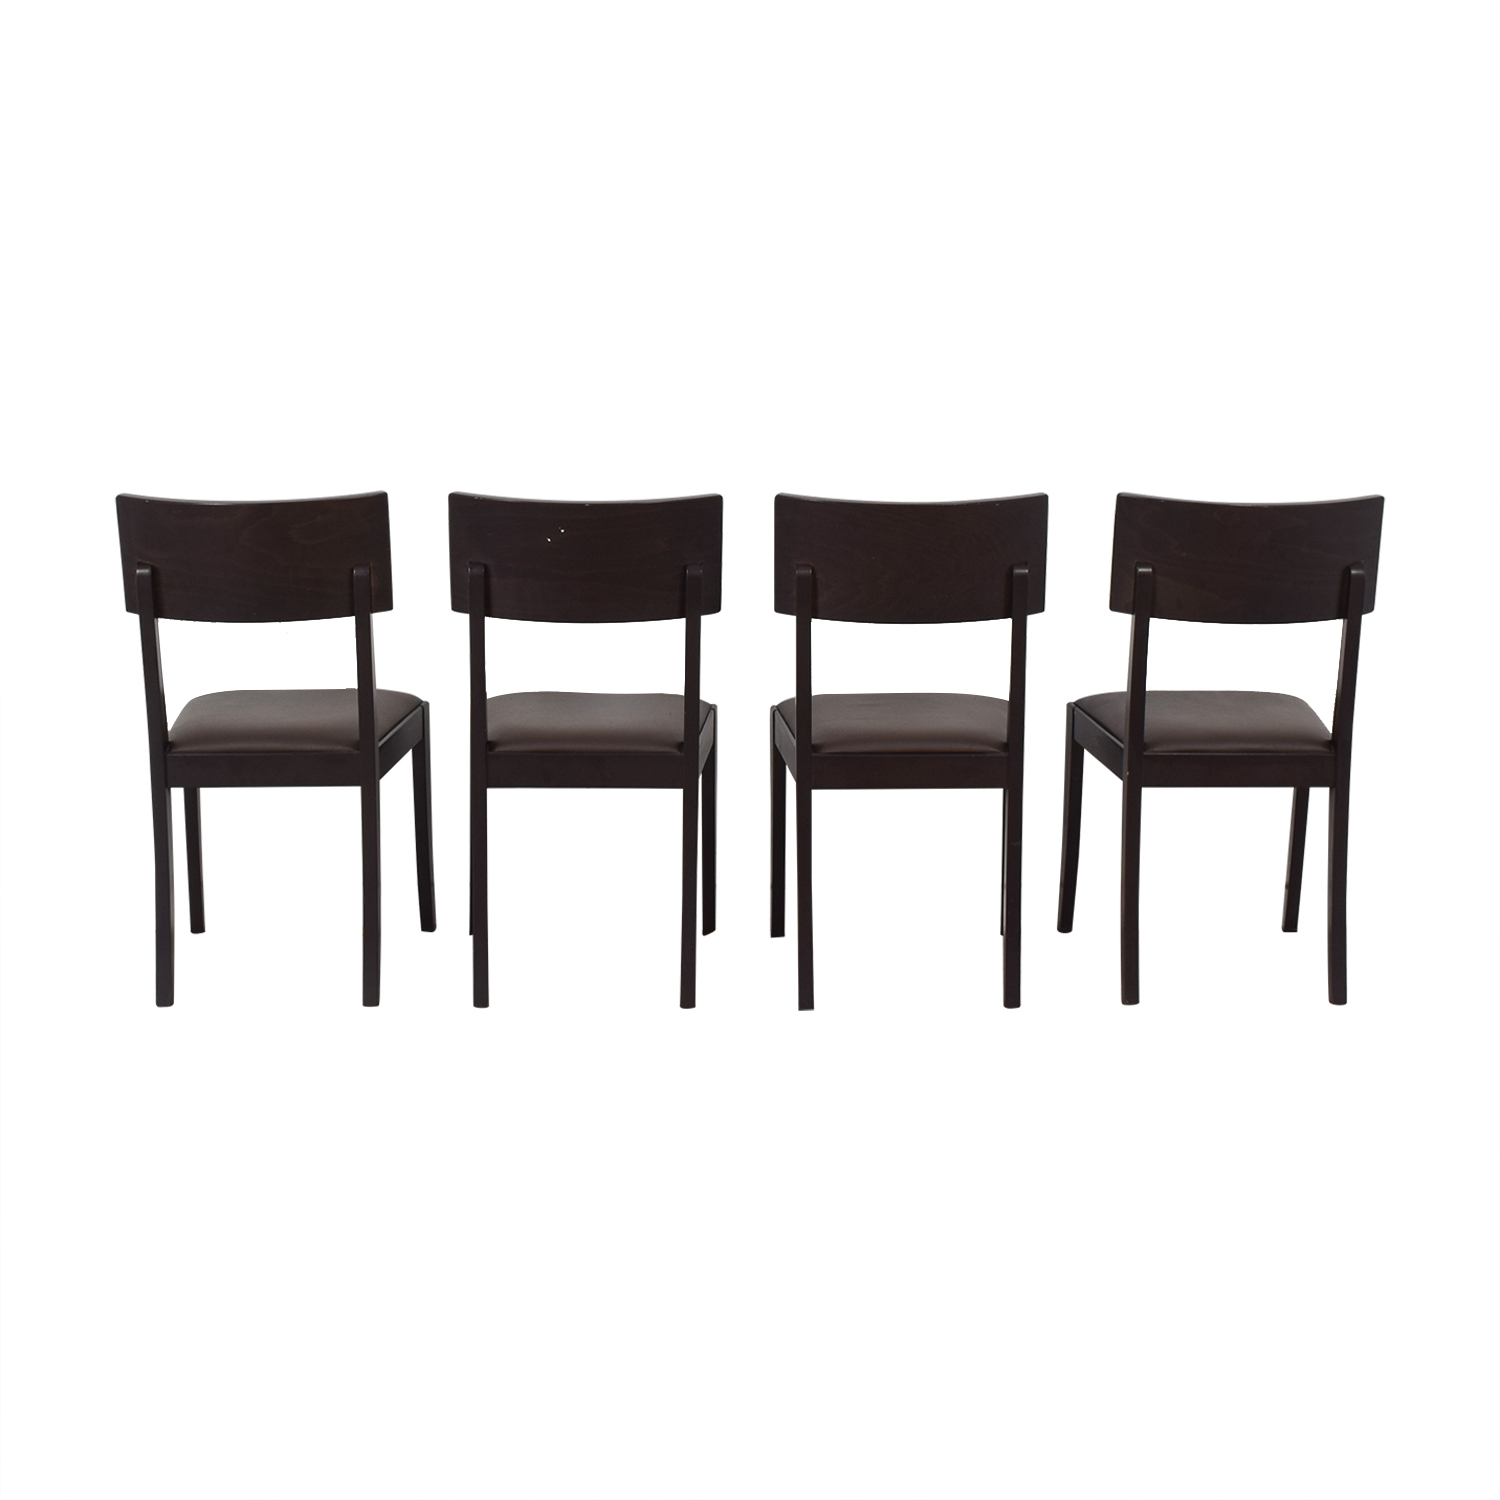 Crate & Barrel Crate & Barrel Dining Chairs for sale